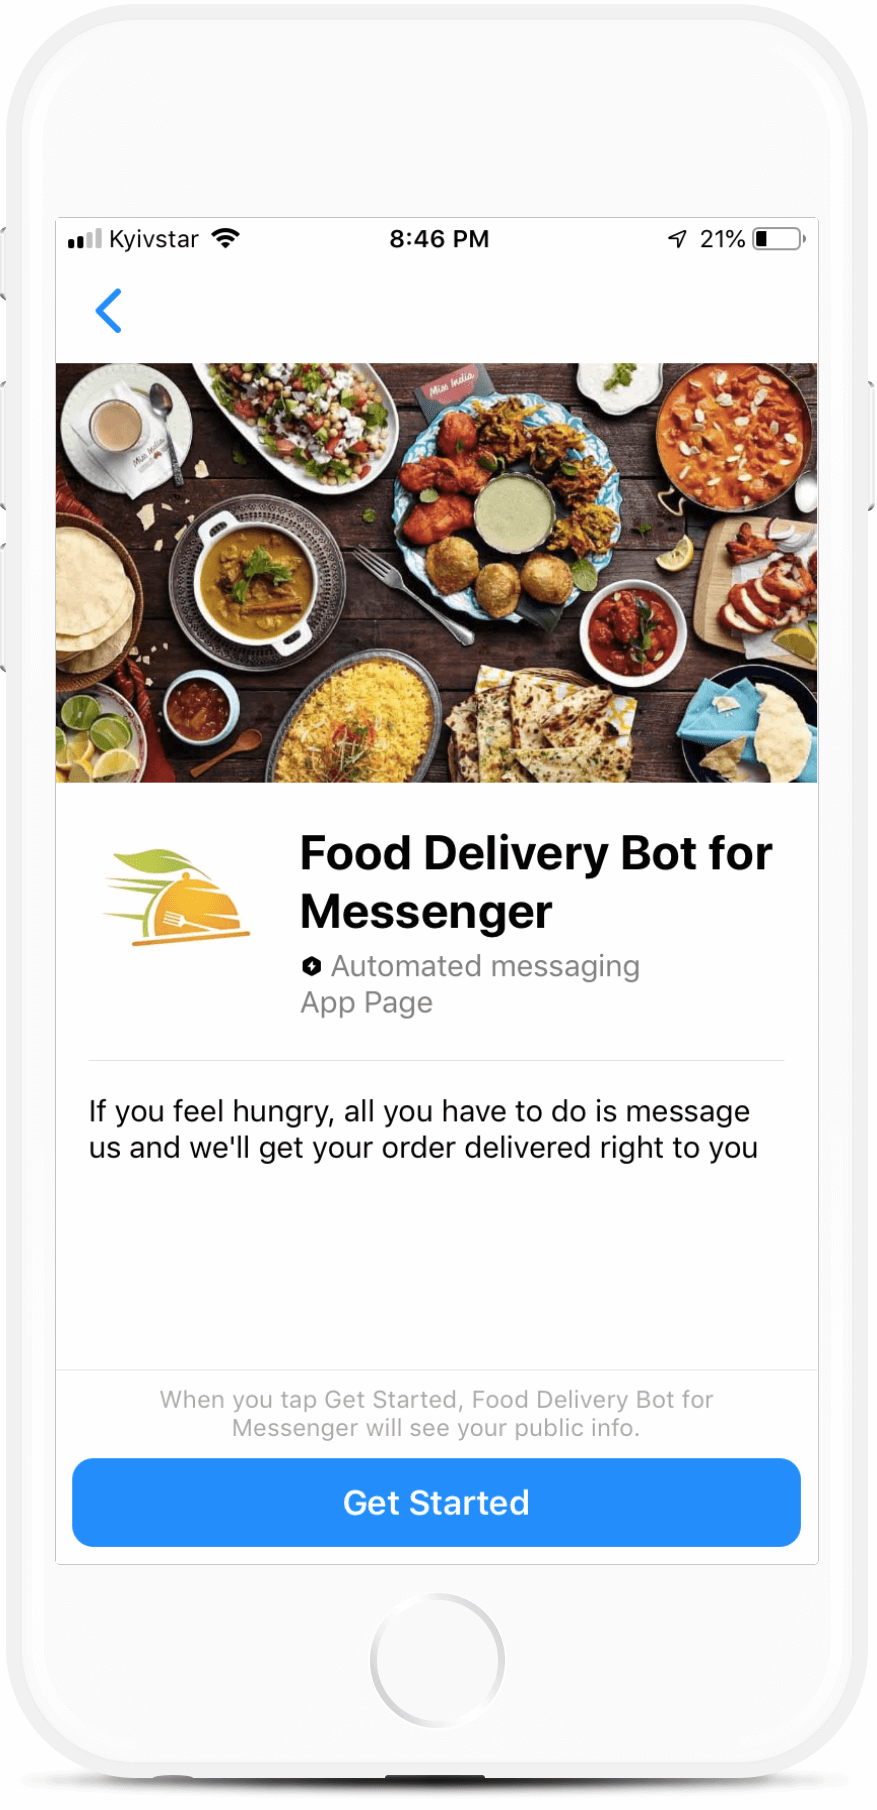 Food Ordering and Delivery bot screenshot